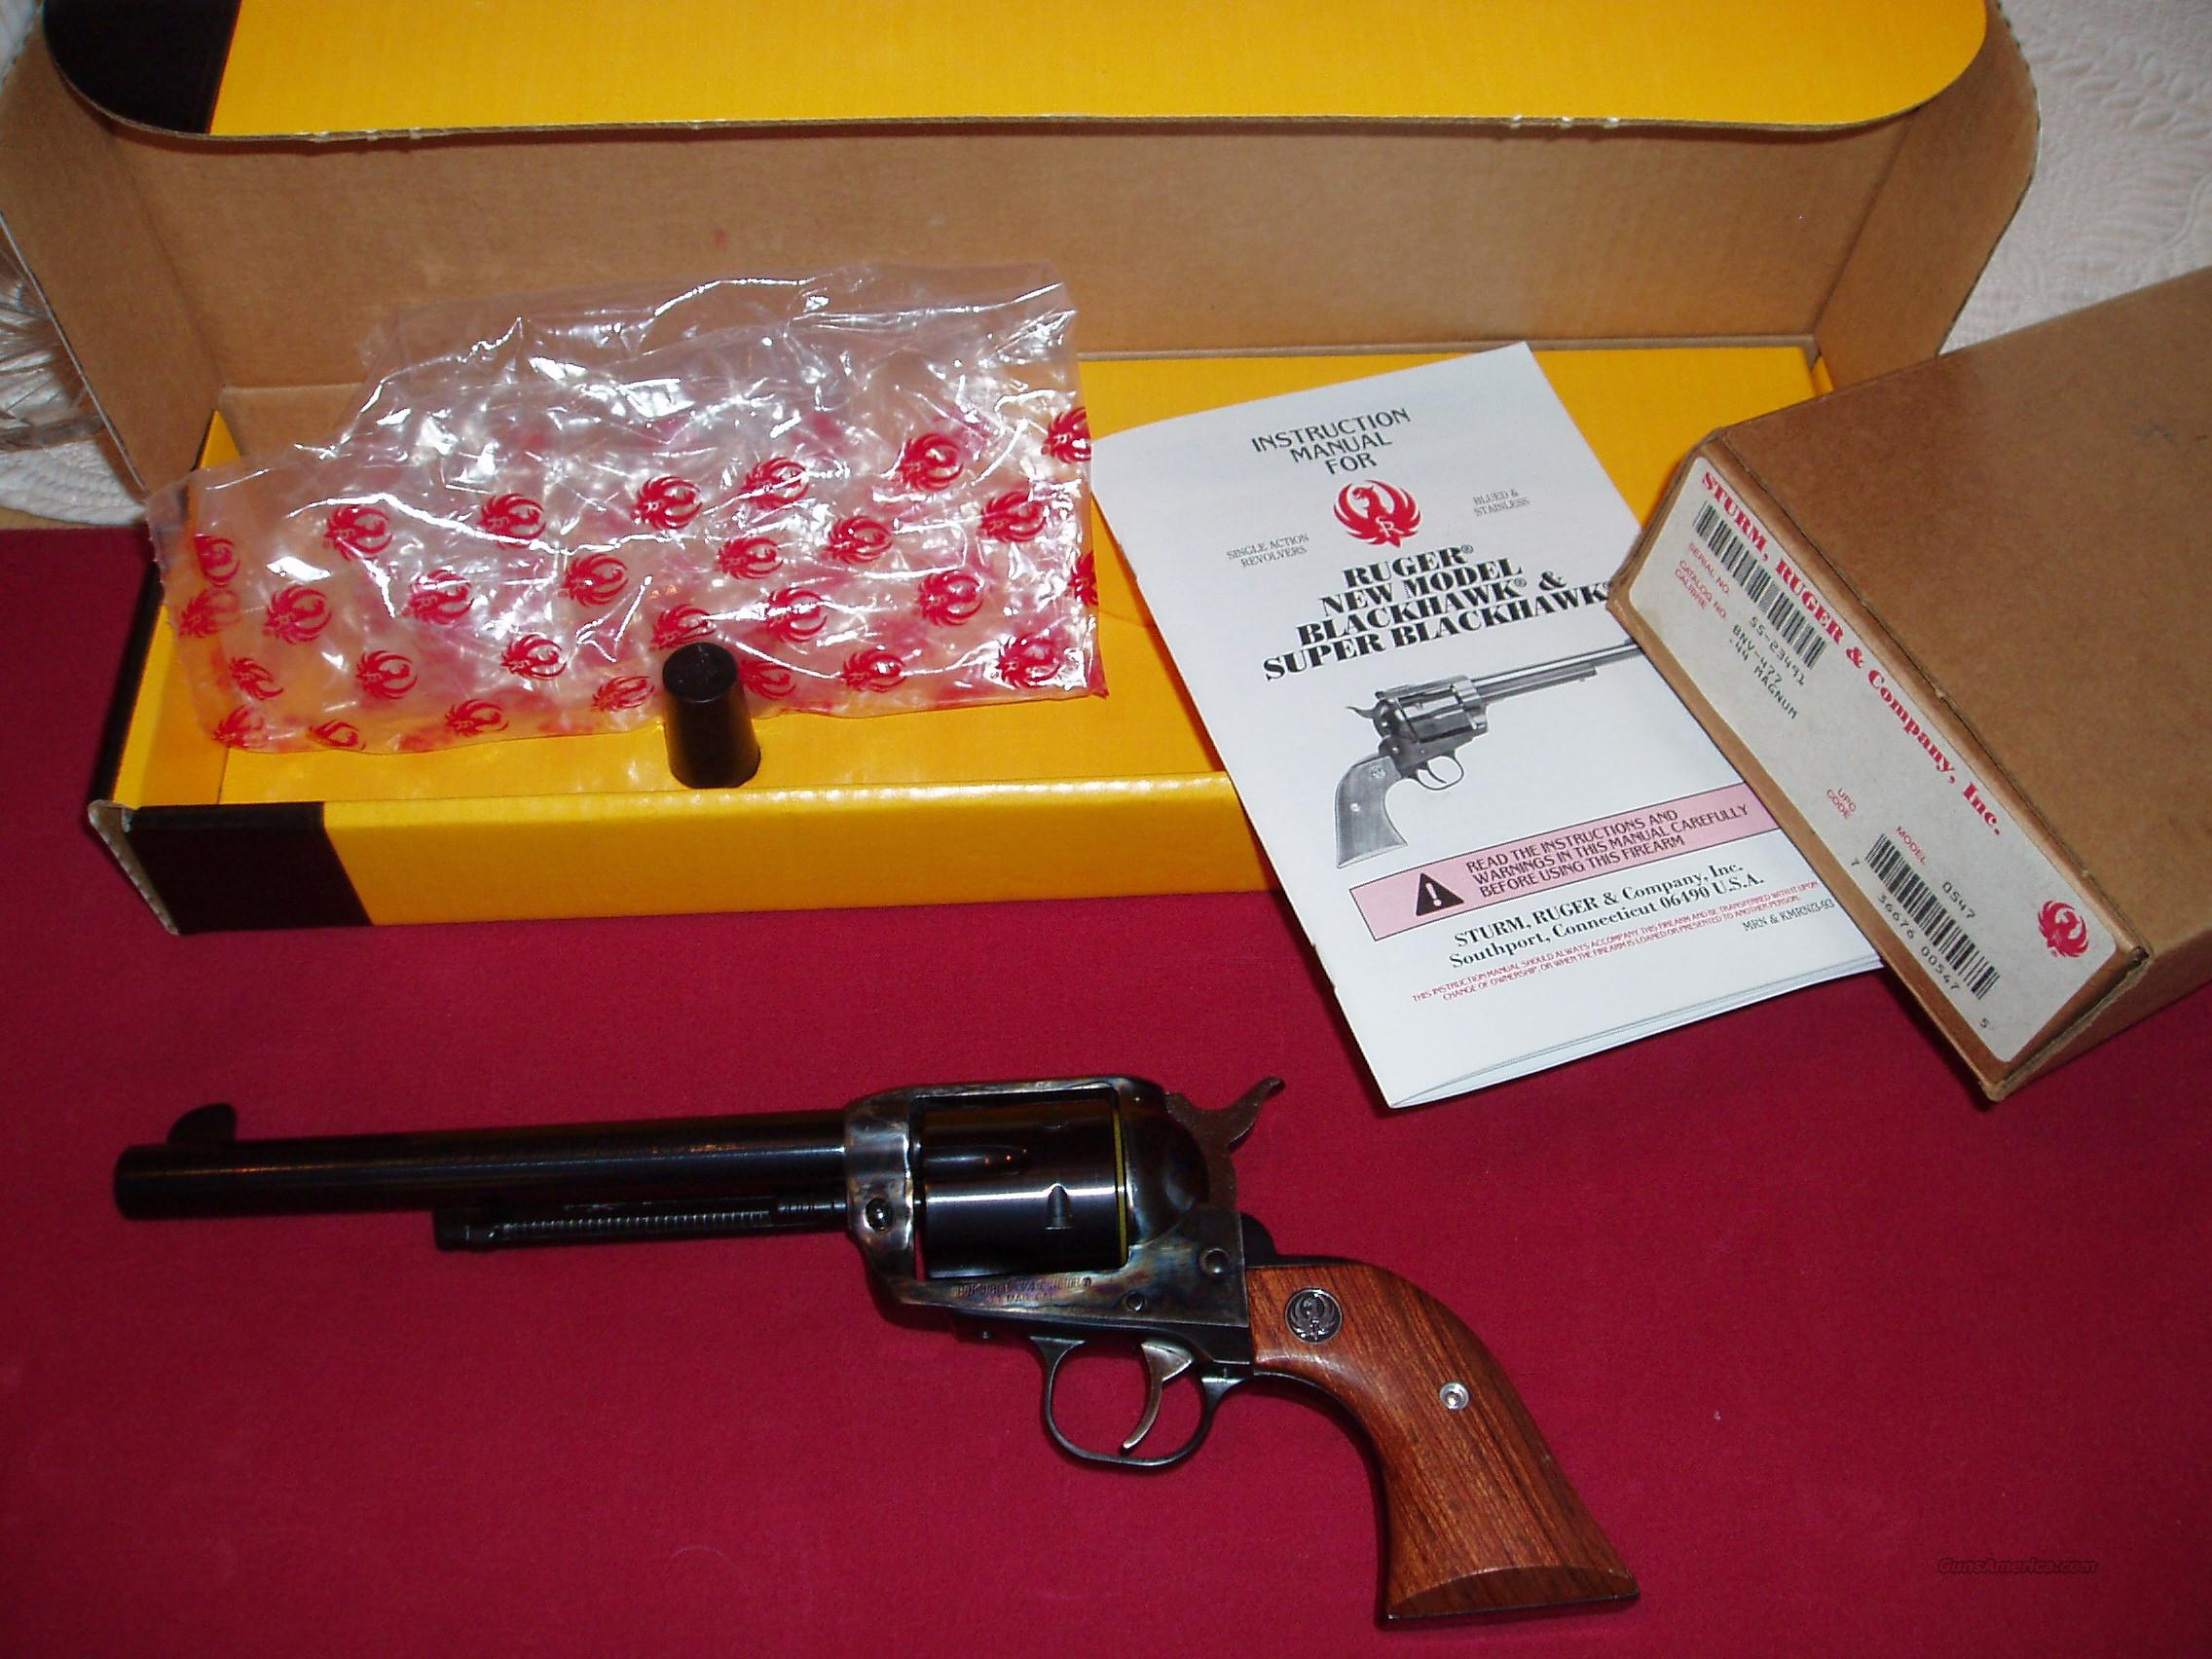 REDUCED AGAIN Ruger Vaquero Model (old style) 44 Rem. Mag. Revolver  Guns > Pistols > Ruger Single Action Revolvers > Cowboy Action